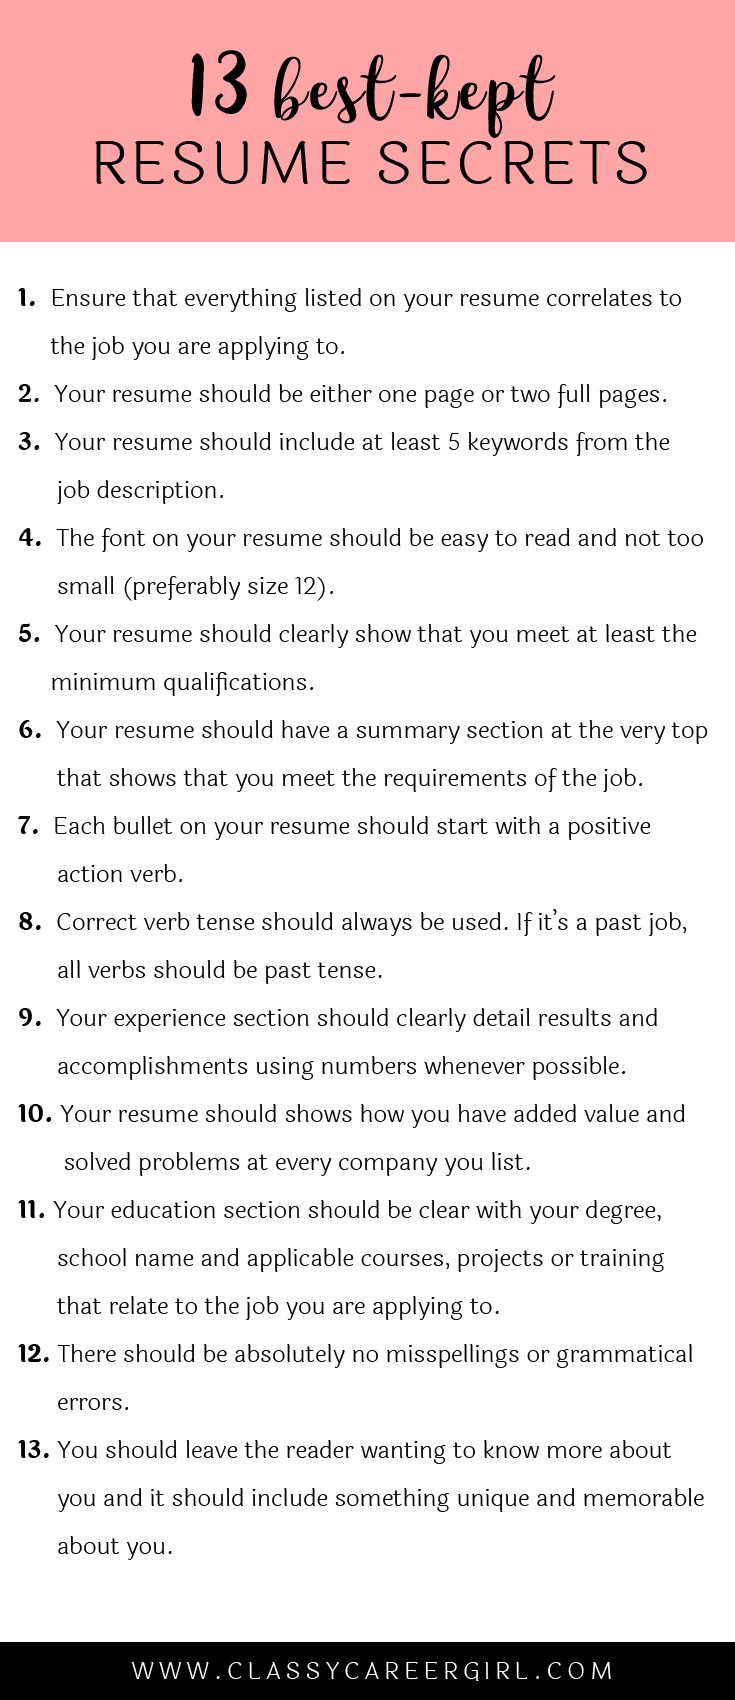 Picnictoimpeachus  Pretty  Ideas About Resume On Pinterest  Cv Format Resume Cv And  With Fascinating Some Hiring Managers Will Toss Your Resume Out If You Dont Know These  With Delectable Great Objective Statements For Resume Also High School Diploma Resume In Addition Assistant Project Manager Resume And Customer Service Representative Resume Examples As Well As What Does A Great Resume Look Like Additionally Management Resume Templates From Pinterestcom With Picnictoimpeachus  Fascinating  Ideas About Resume On Pinterest  Cv Format Resume Cv And  With Delectable Some Hiring Managers Will Toss Your Resume Out If You Dont Know These  And Pretty Great Objective Statements For Resume Also High School Diploma Resume In Addition Assistant Project Manager Resume From Pinterestcom